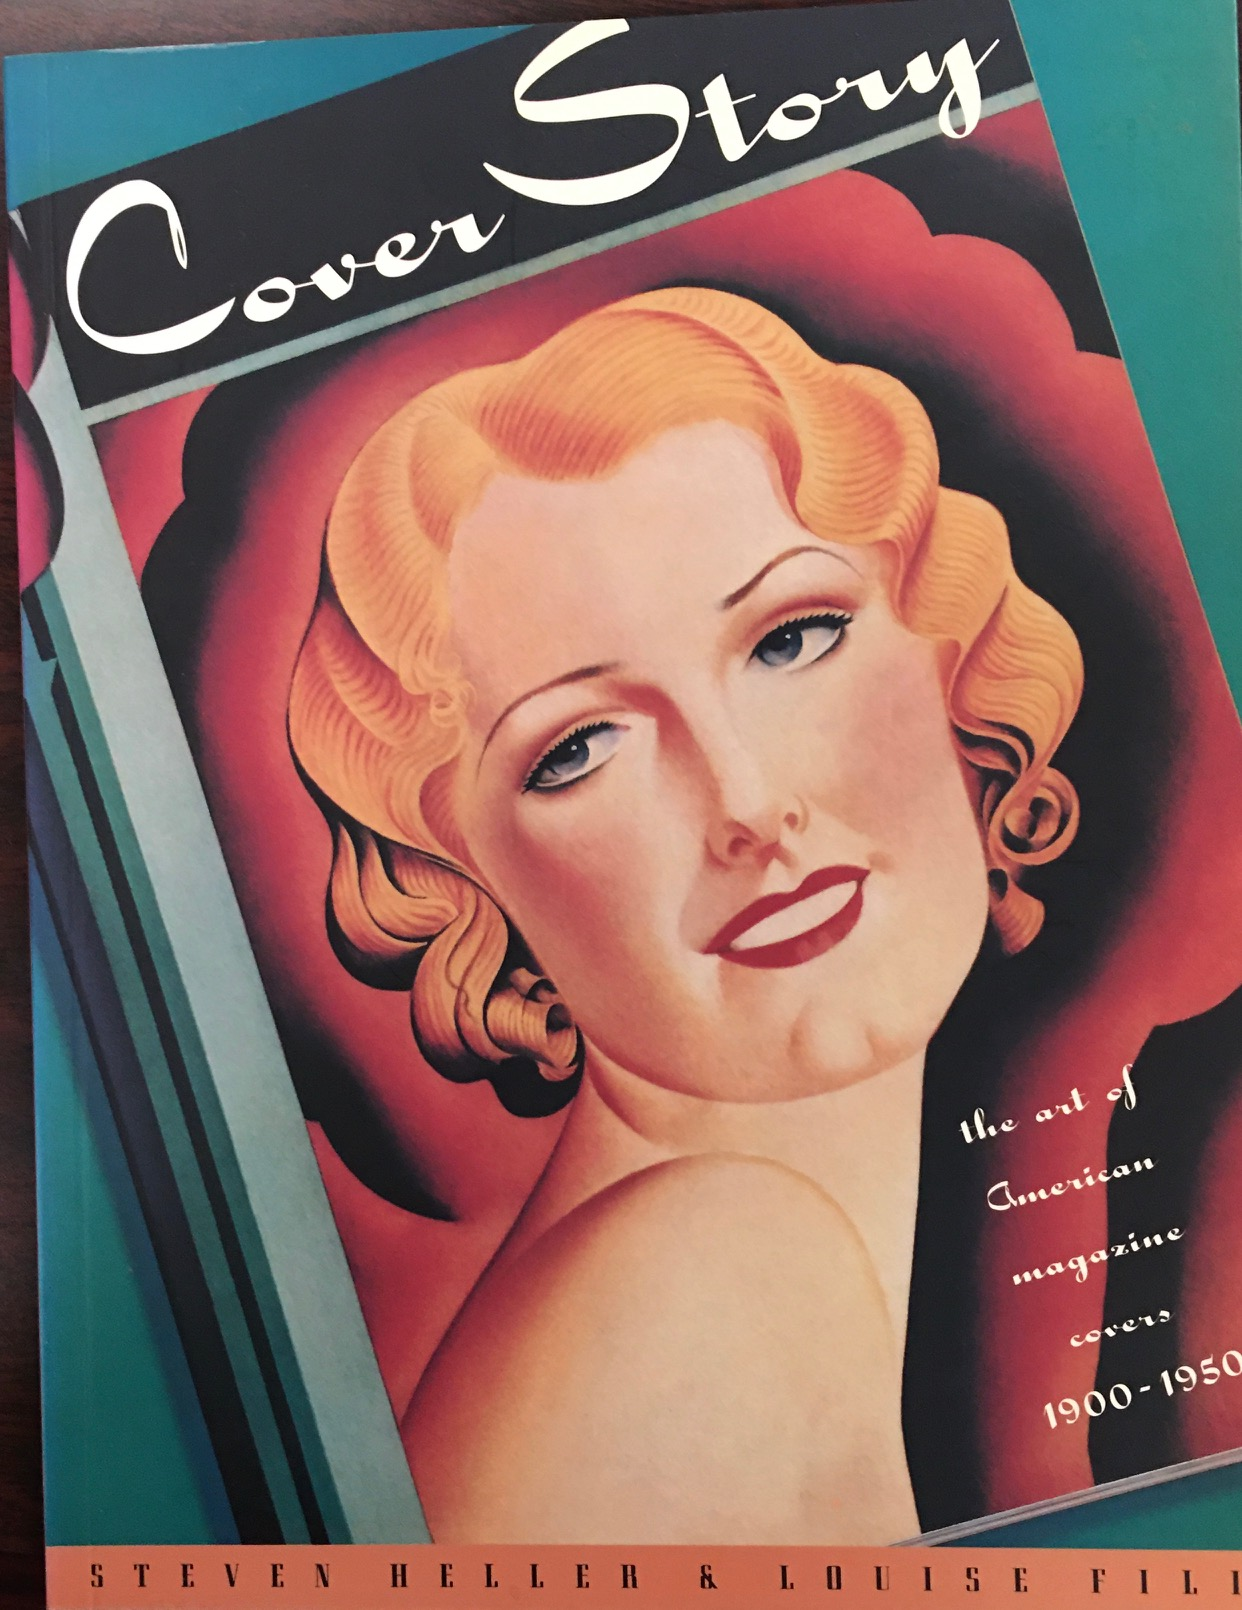 Image for Cover Story: The art of American magazine covers 1900-1950